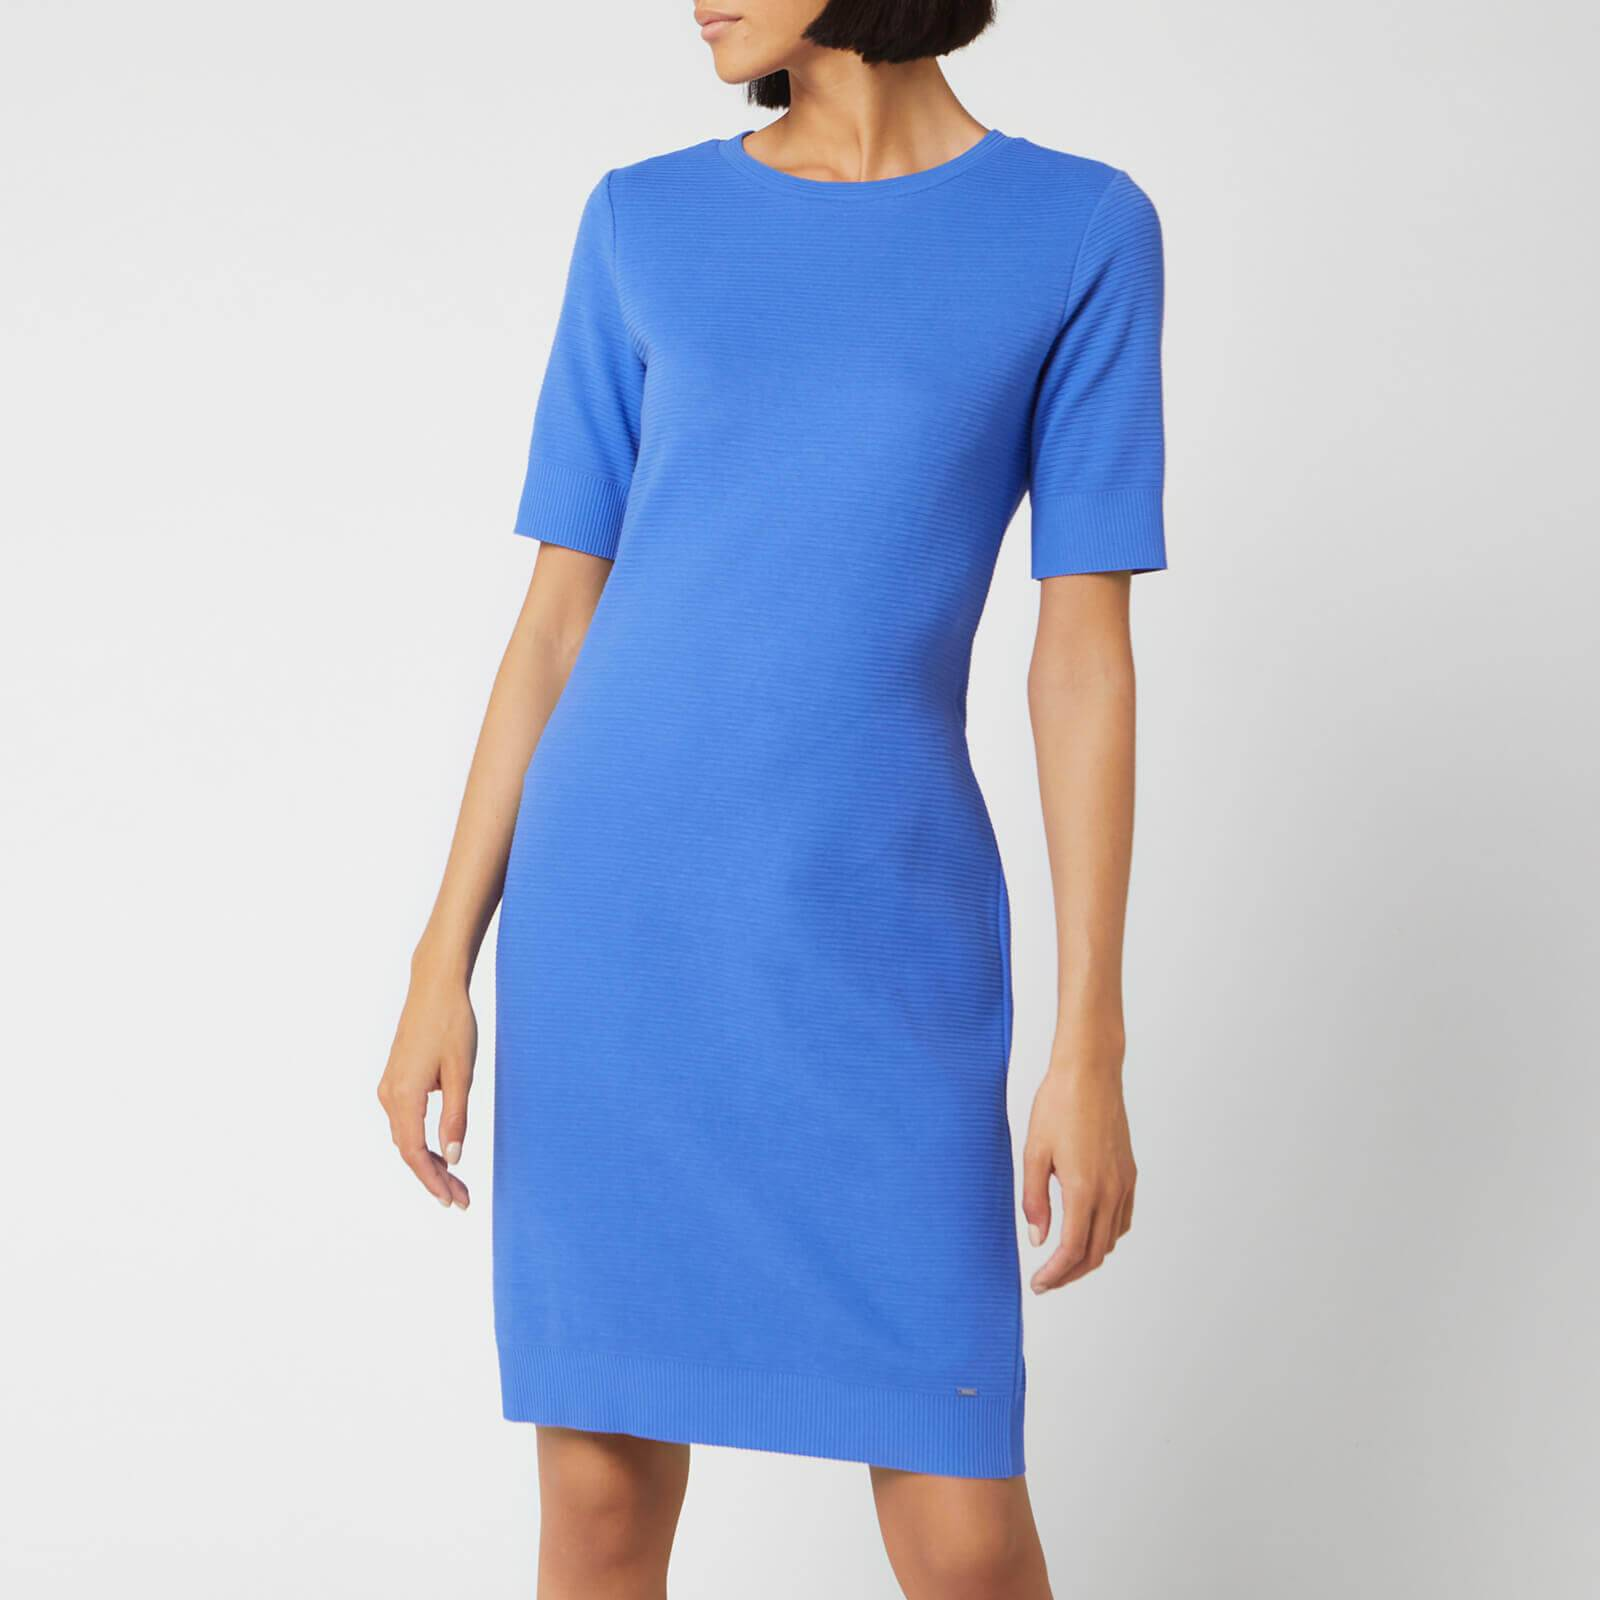 Boss Women's Dabutton Dress - Cornflower Blue - M